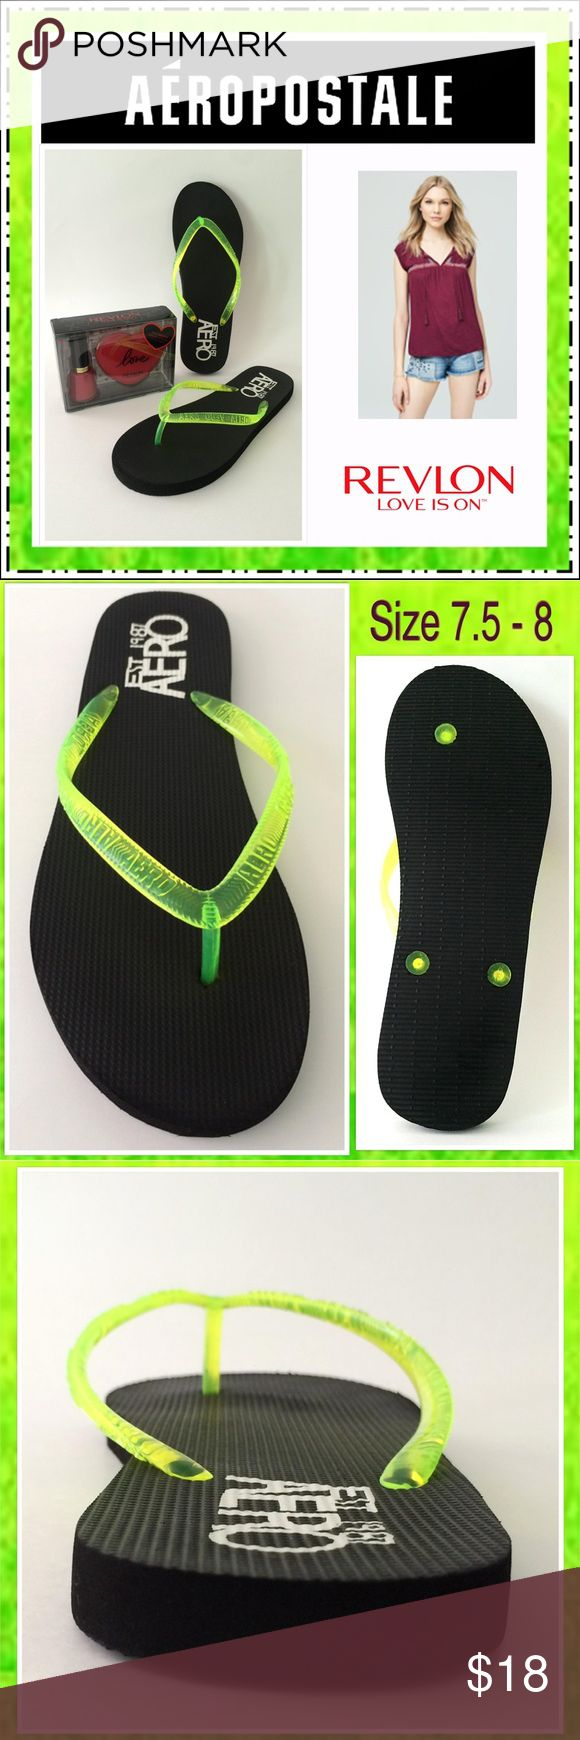 Aero Black Green Translucent Strap Flip Flop~ Sz 8 ★Like New Aéropostale Black Flip Flops with Green Translucent Strap, Size 8. Perfect to create a relaxed look to a basic black dress or give a splash to any swimsuit. Rich black sole makes the strap, with raised Aero logo, stand out. The logo is also on the heel bed in bright white. Typical marks from being worn once. Comes with bonus new Revlon Red Something Special Compact Duo Mirror Gift Set. Retails $30. (extremely clean) smoke-free…